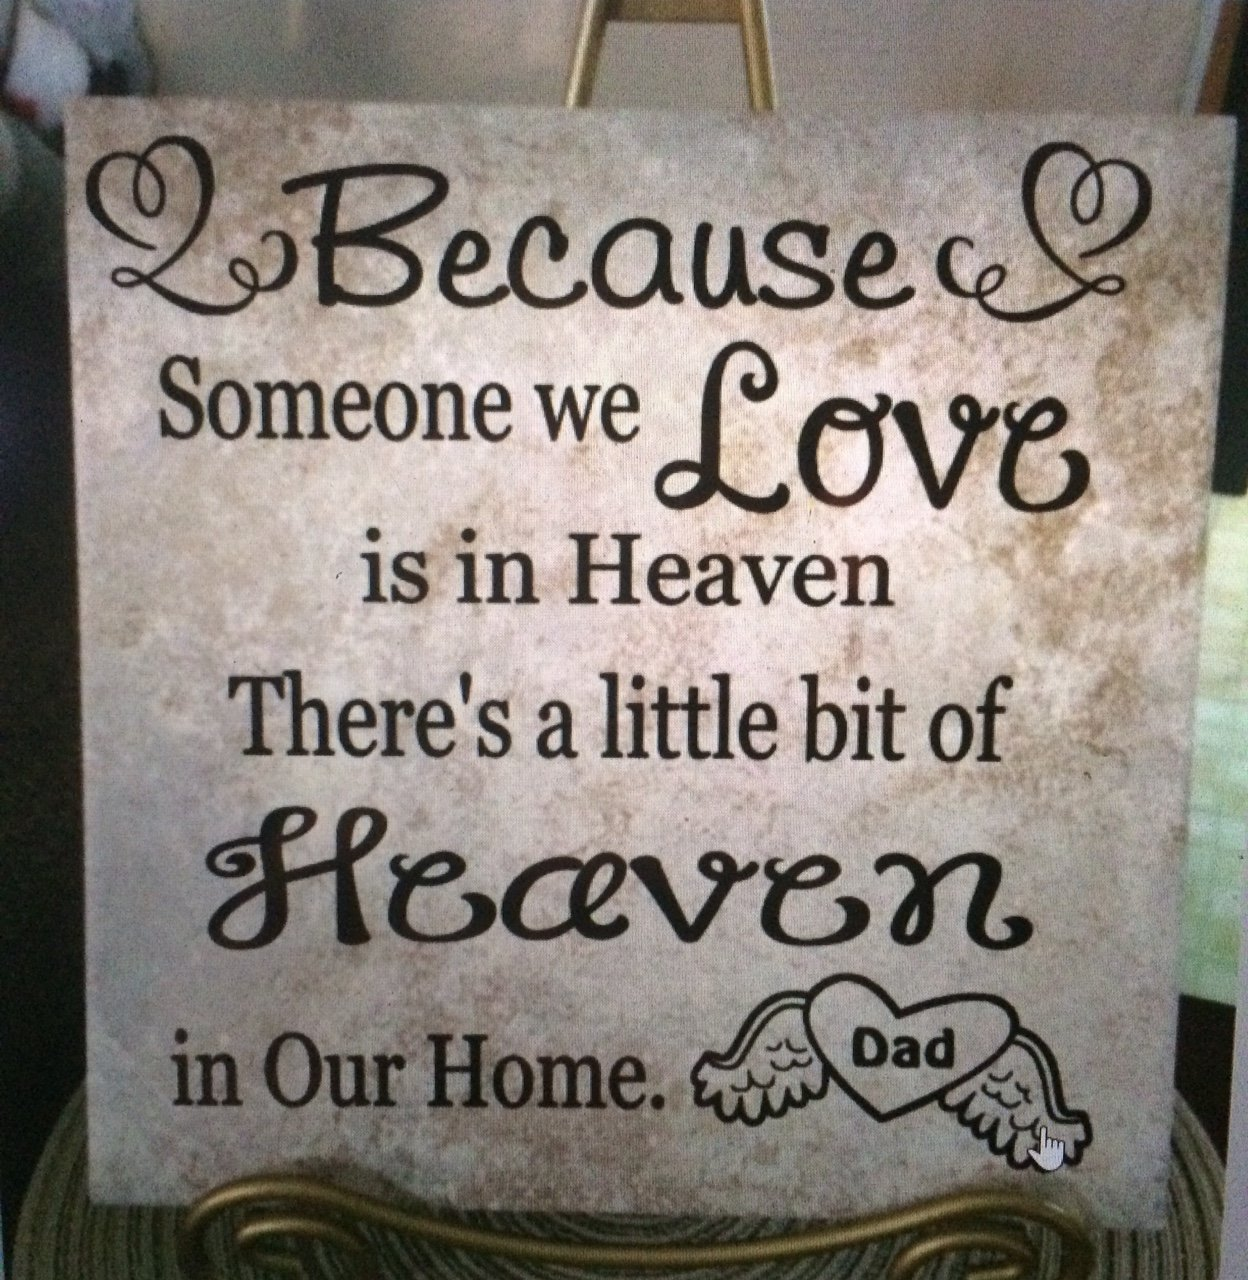 Heaven home loved one memory memorial family personalized ceramic heaven home loved one memory memorial family personalized ceramic tile 12 x 12 custom gift love dailygadgetfo Choice Image